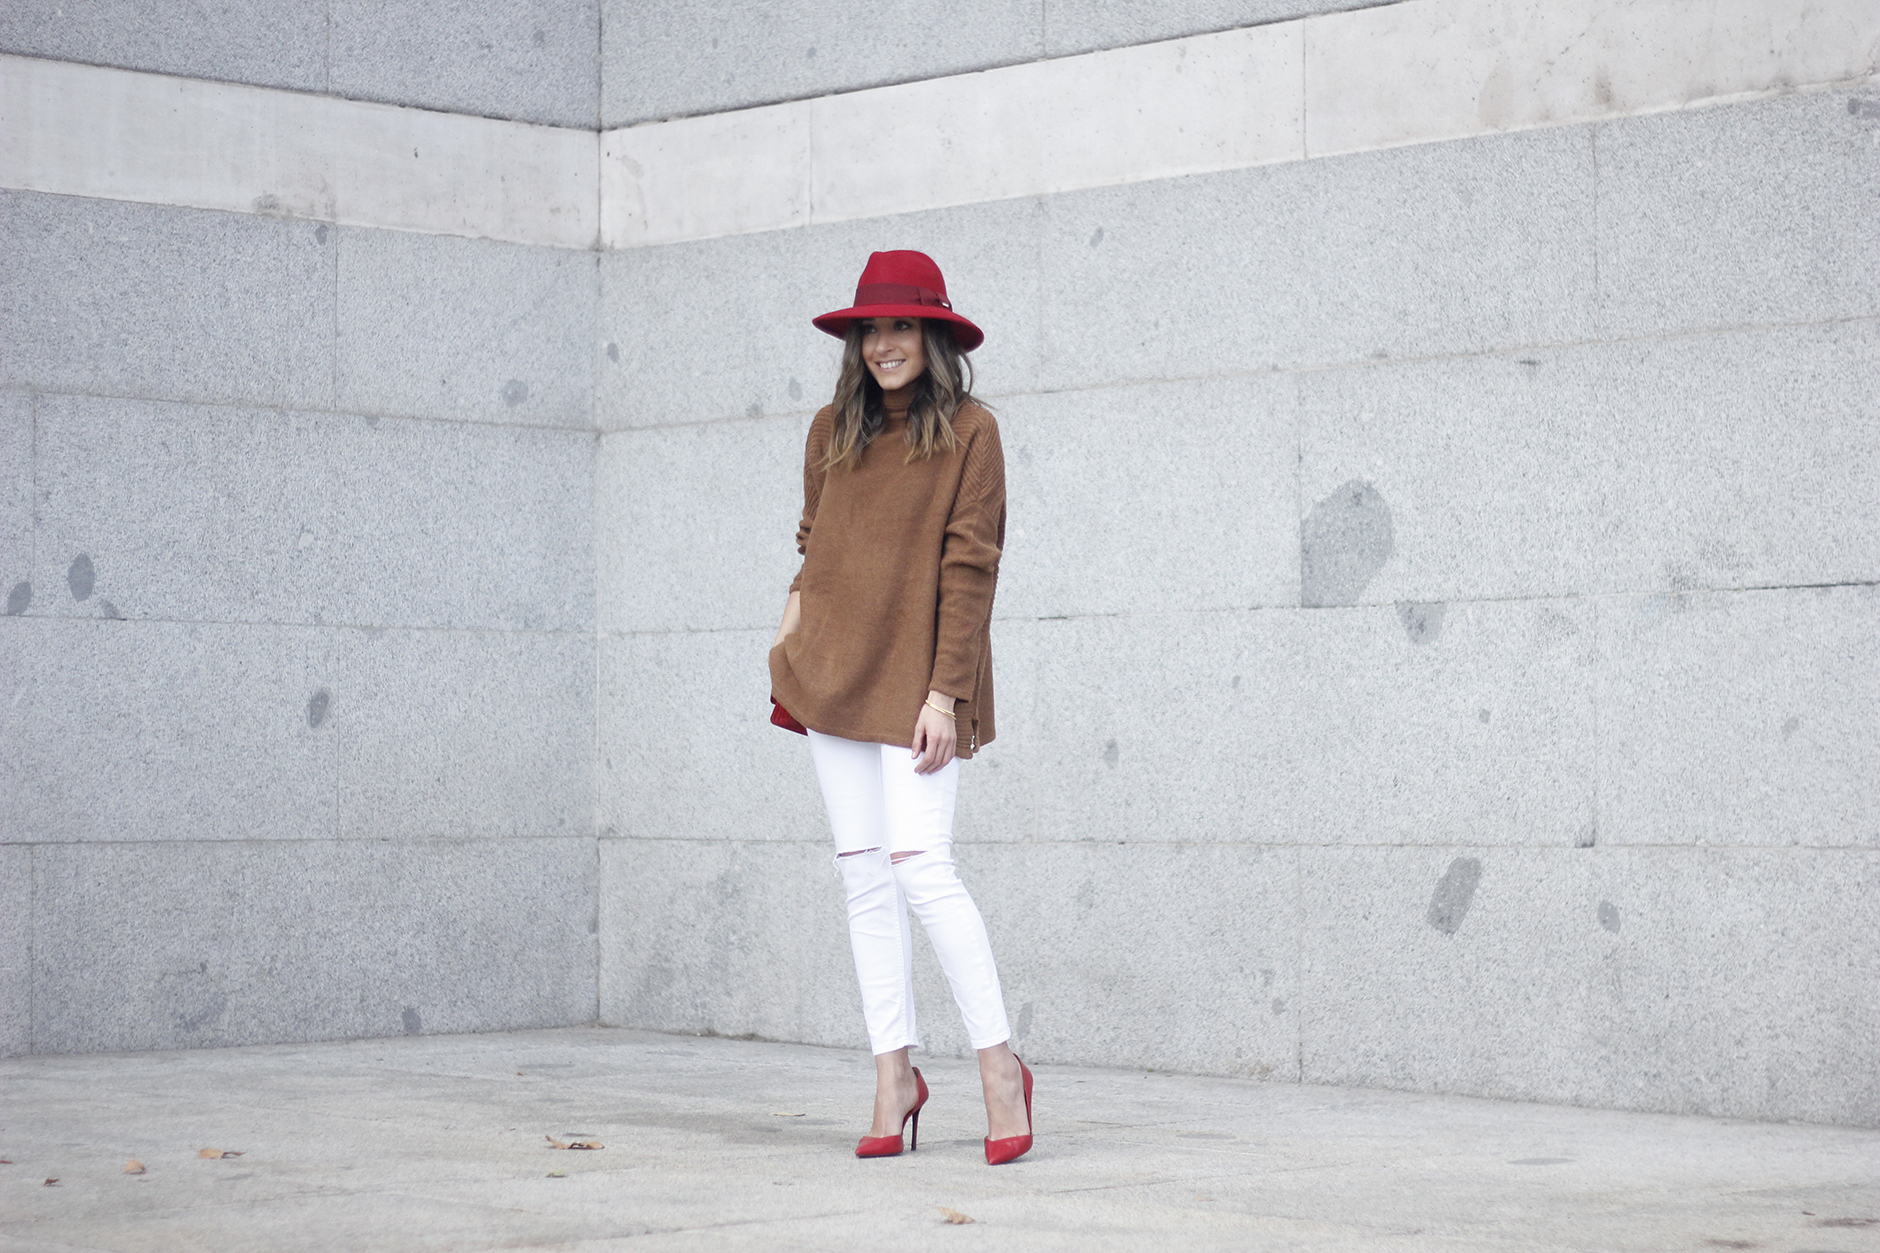 Turtleneck Sweater white jeans red heels red hat uterqüe outfit04